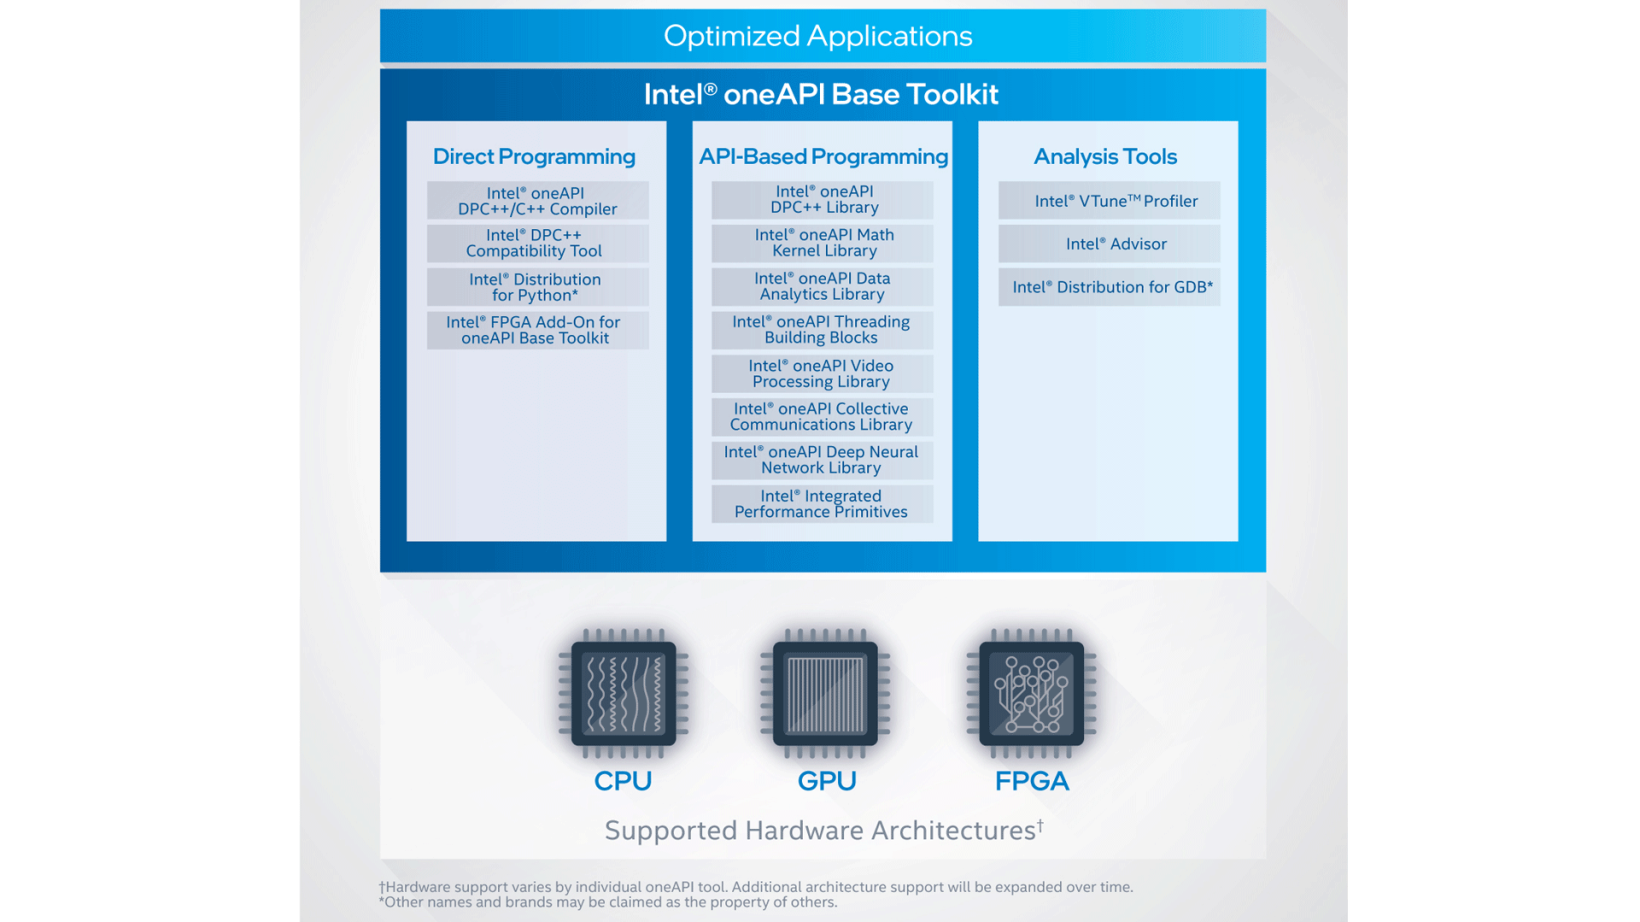 The oneAPI Base Toolkit includes everything you need to start writing applications that take advantage of Intel's CPU and XPU architectures.